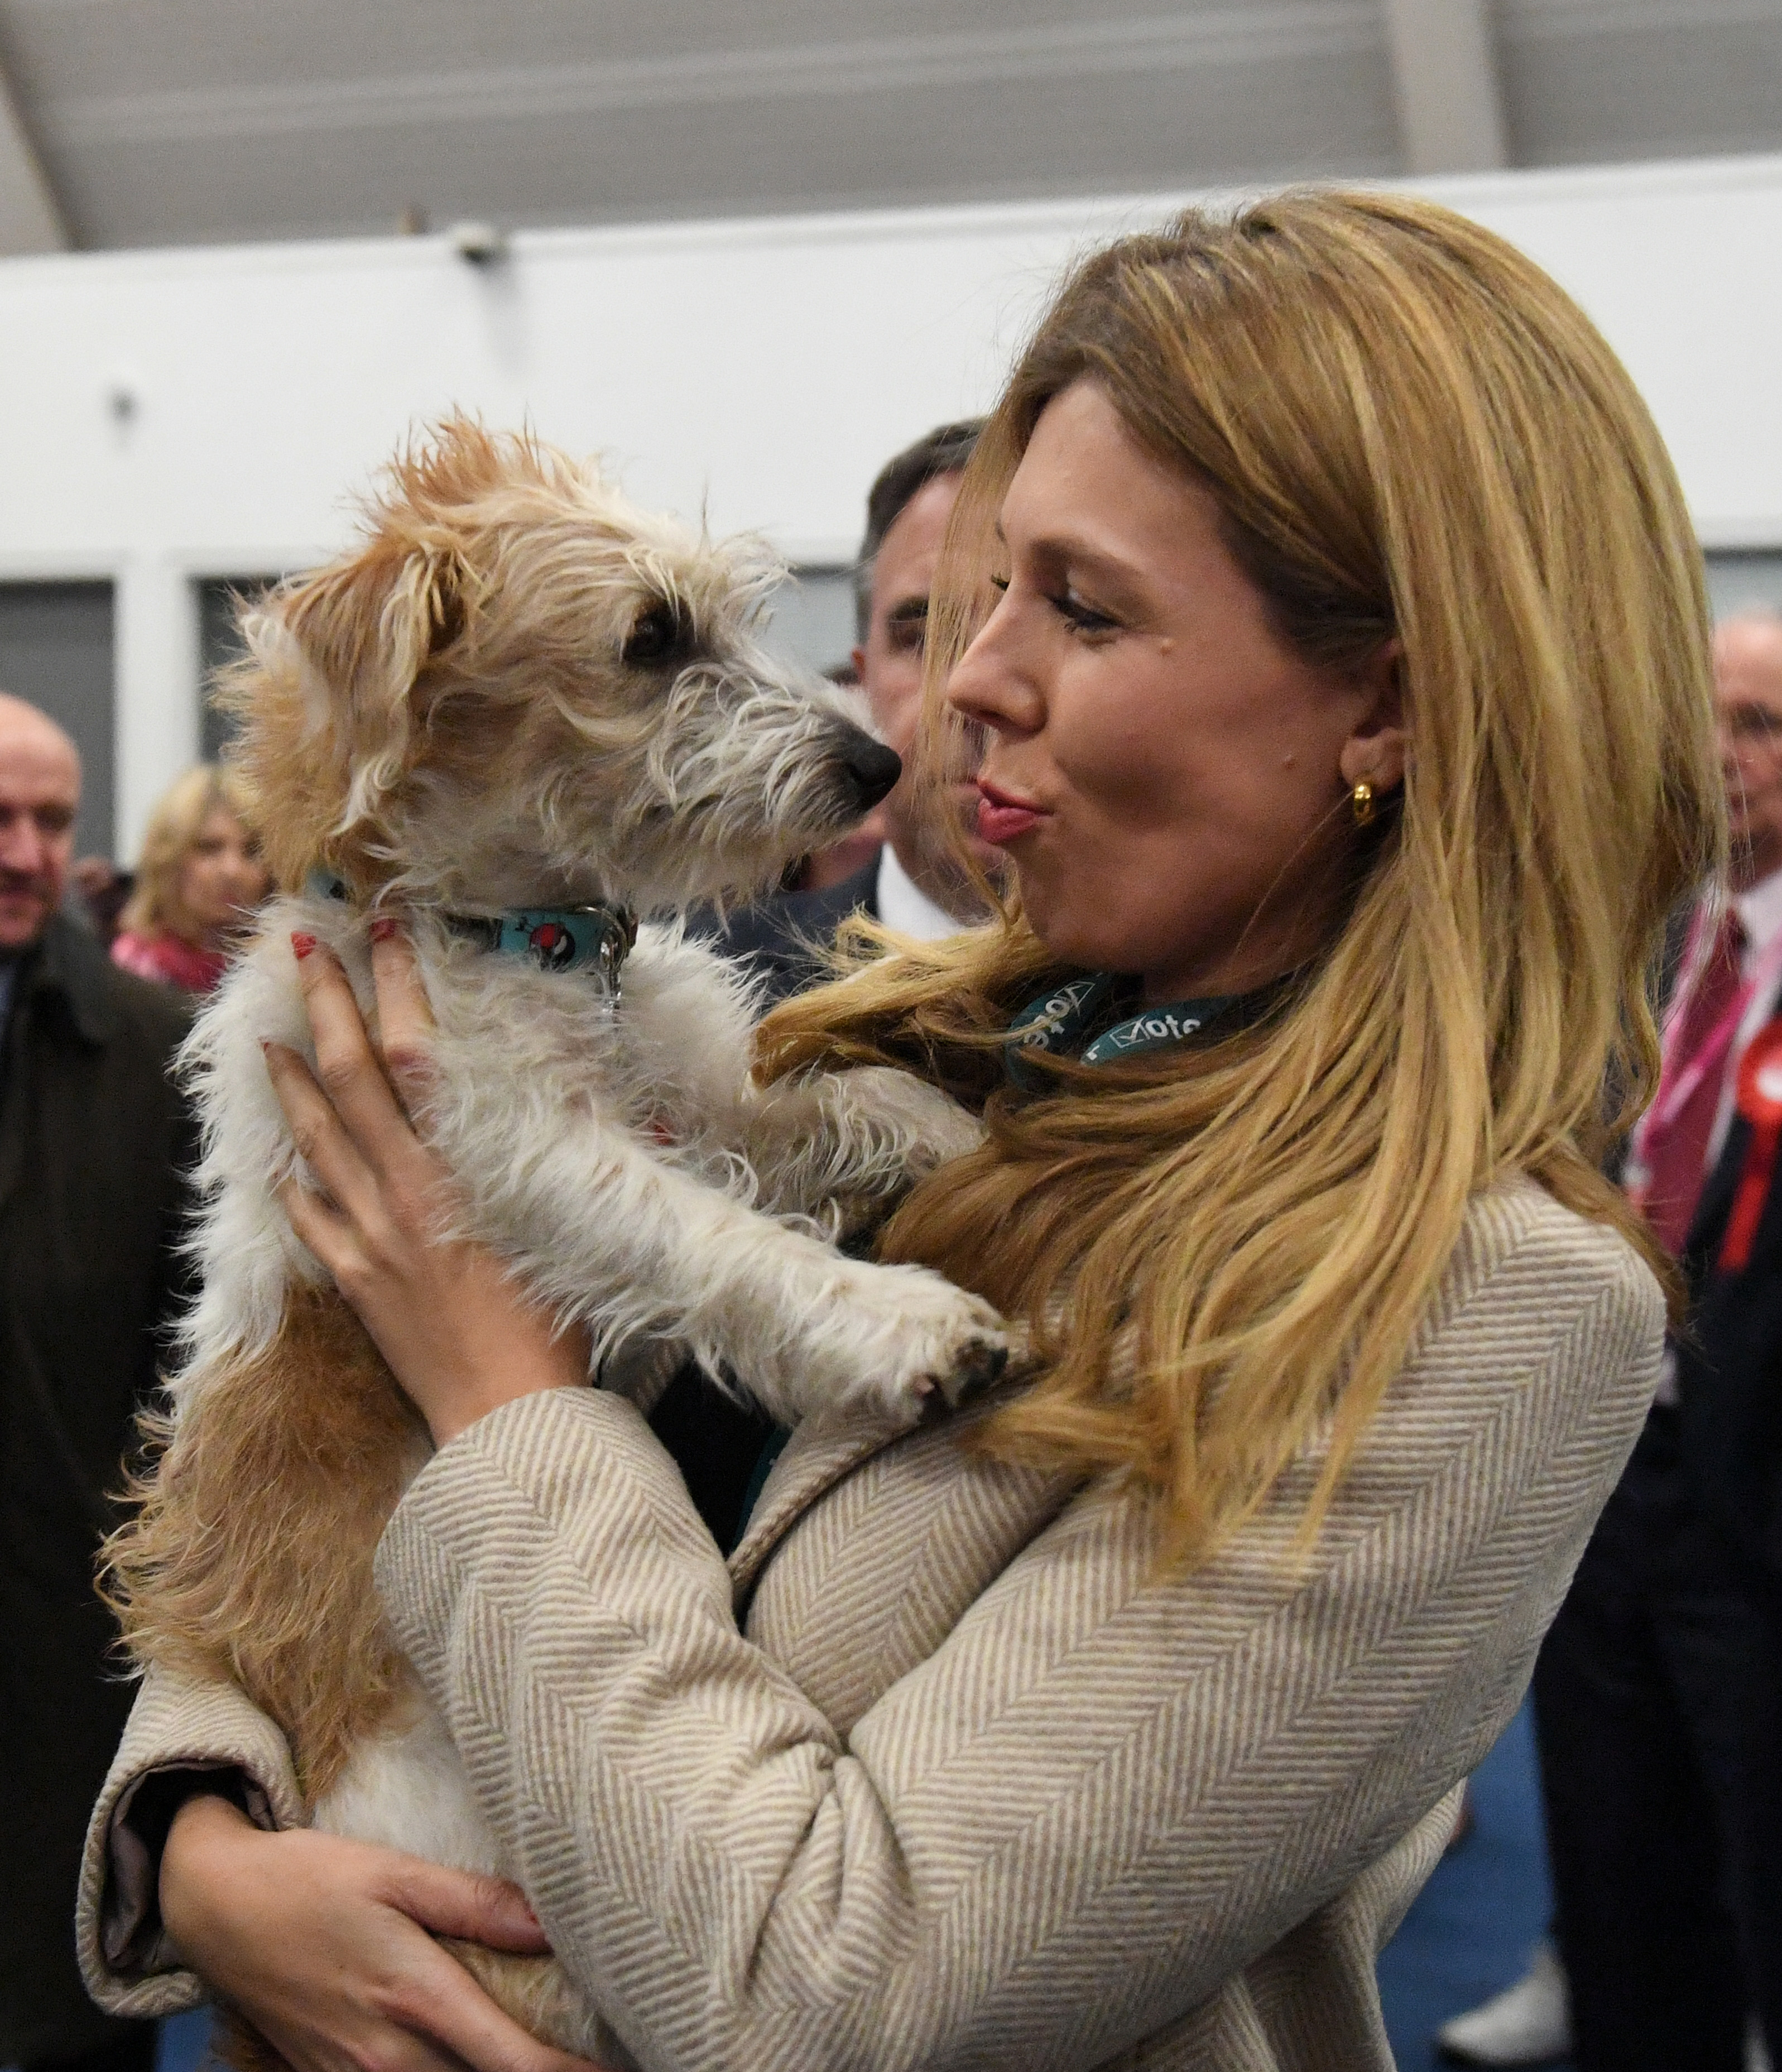 Prime Minister Boris Johnson's partner Carrie Symonds and dog Dilyn arriving for the count for the Uxbridge & Ruislip South constituency in the 2019 General Election.